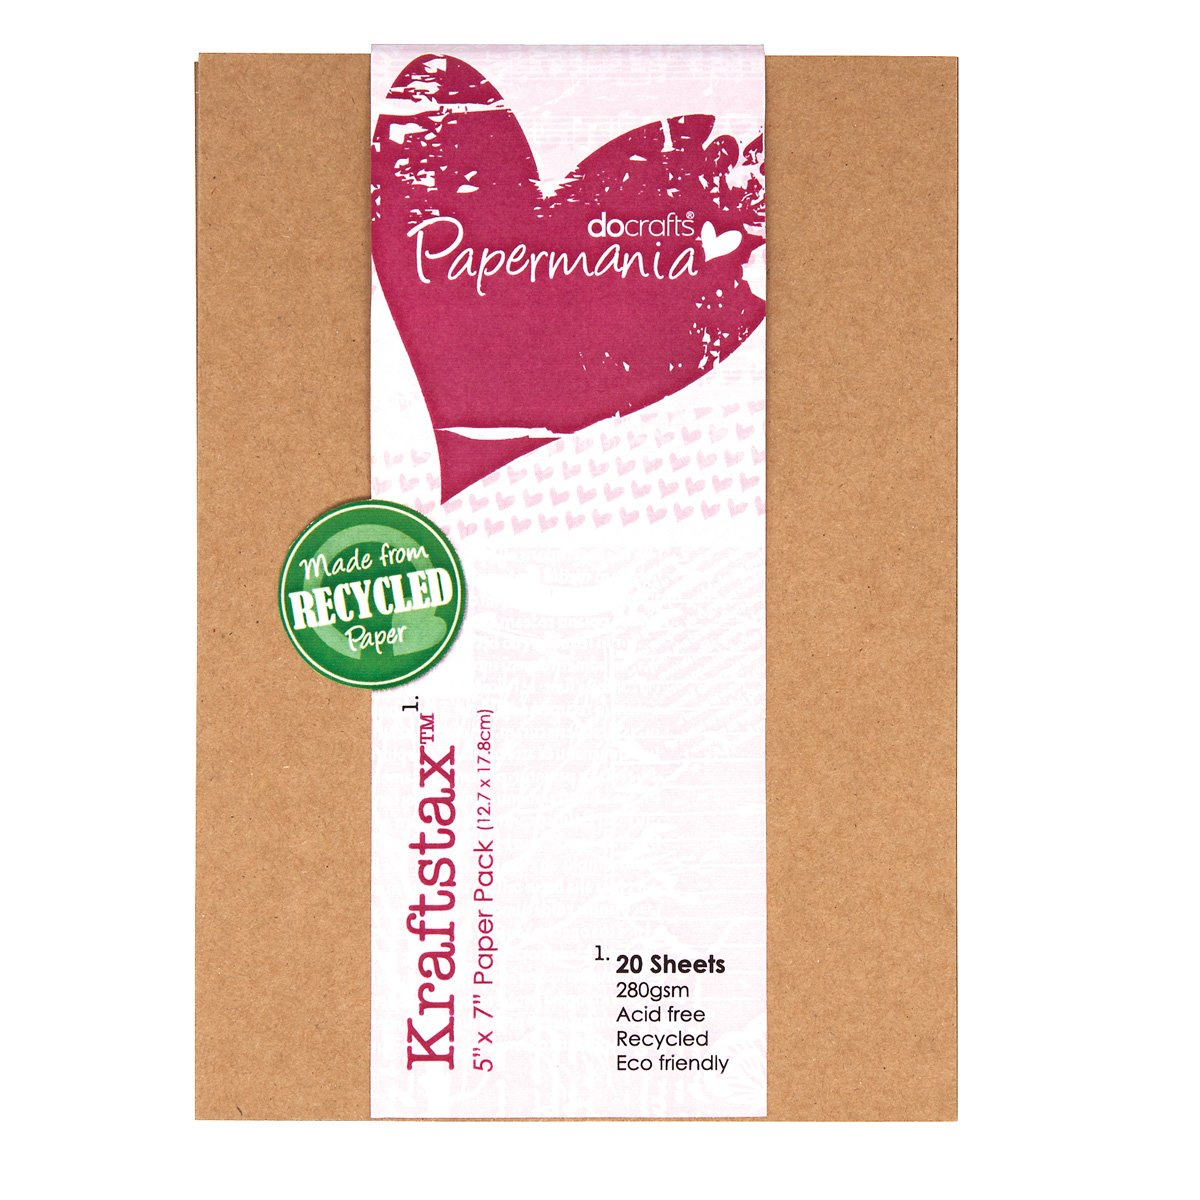 Papermania 7 x 5-inch Kraftstax Premium Kraft Paper Inserts Eco Cardstock, Pack of 20, Brown Docrafts PMA160601